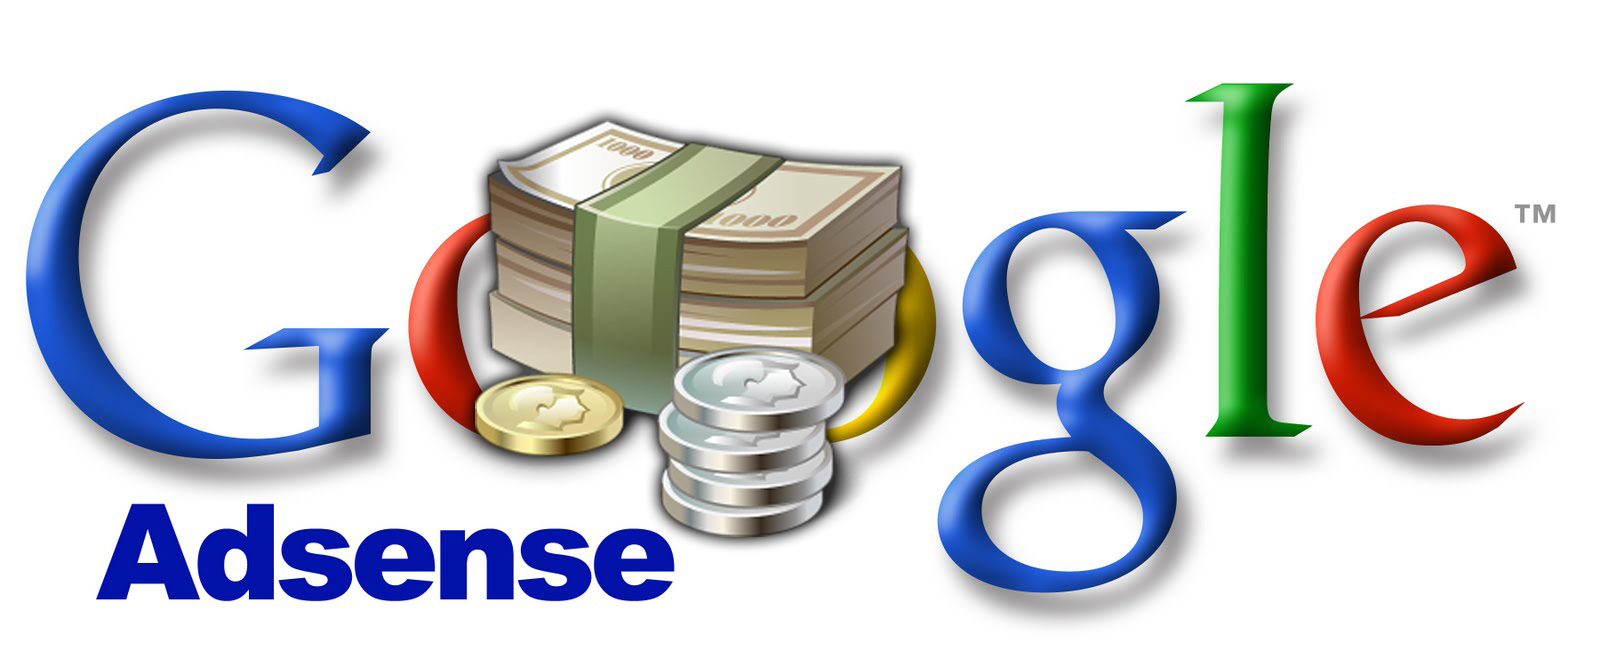 Earn instant cash with Adsense on daily basis. Guaranteed results